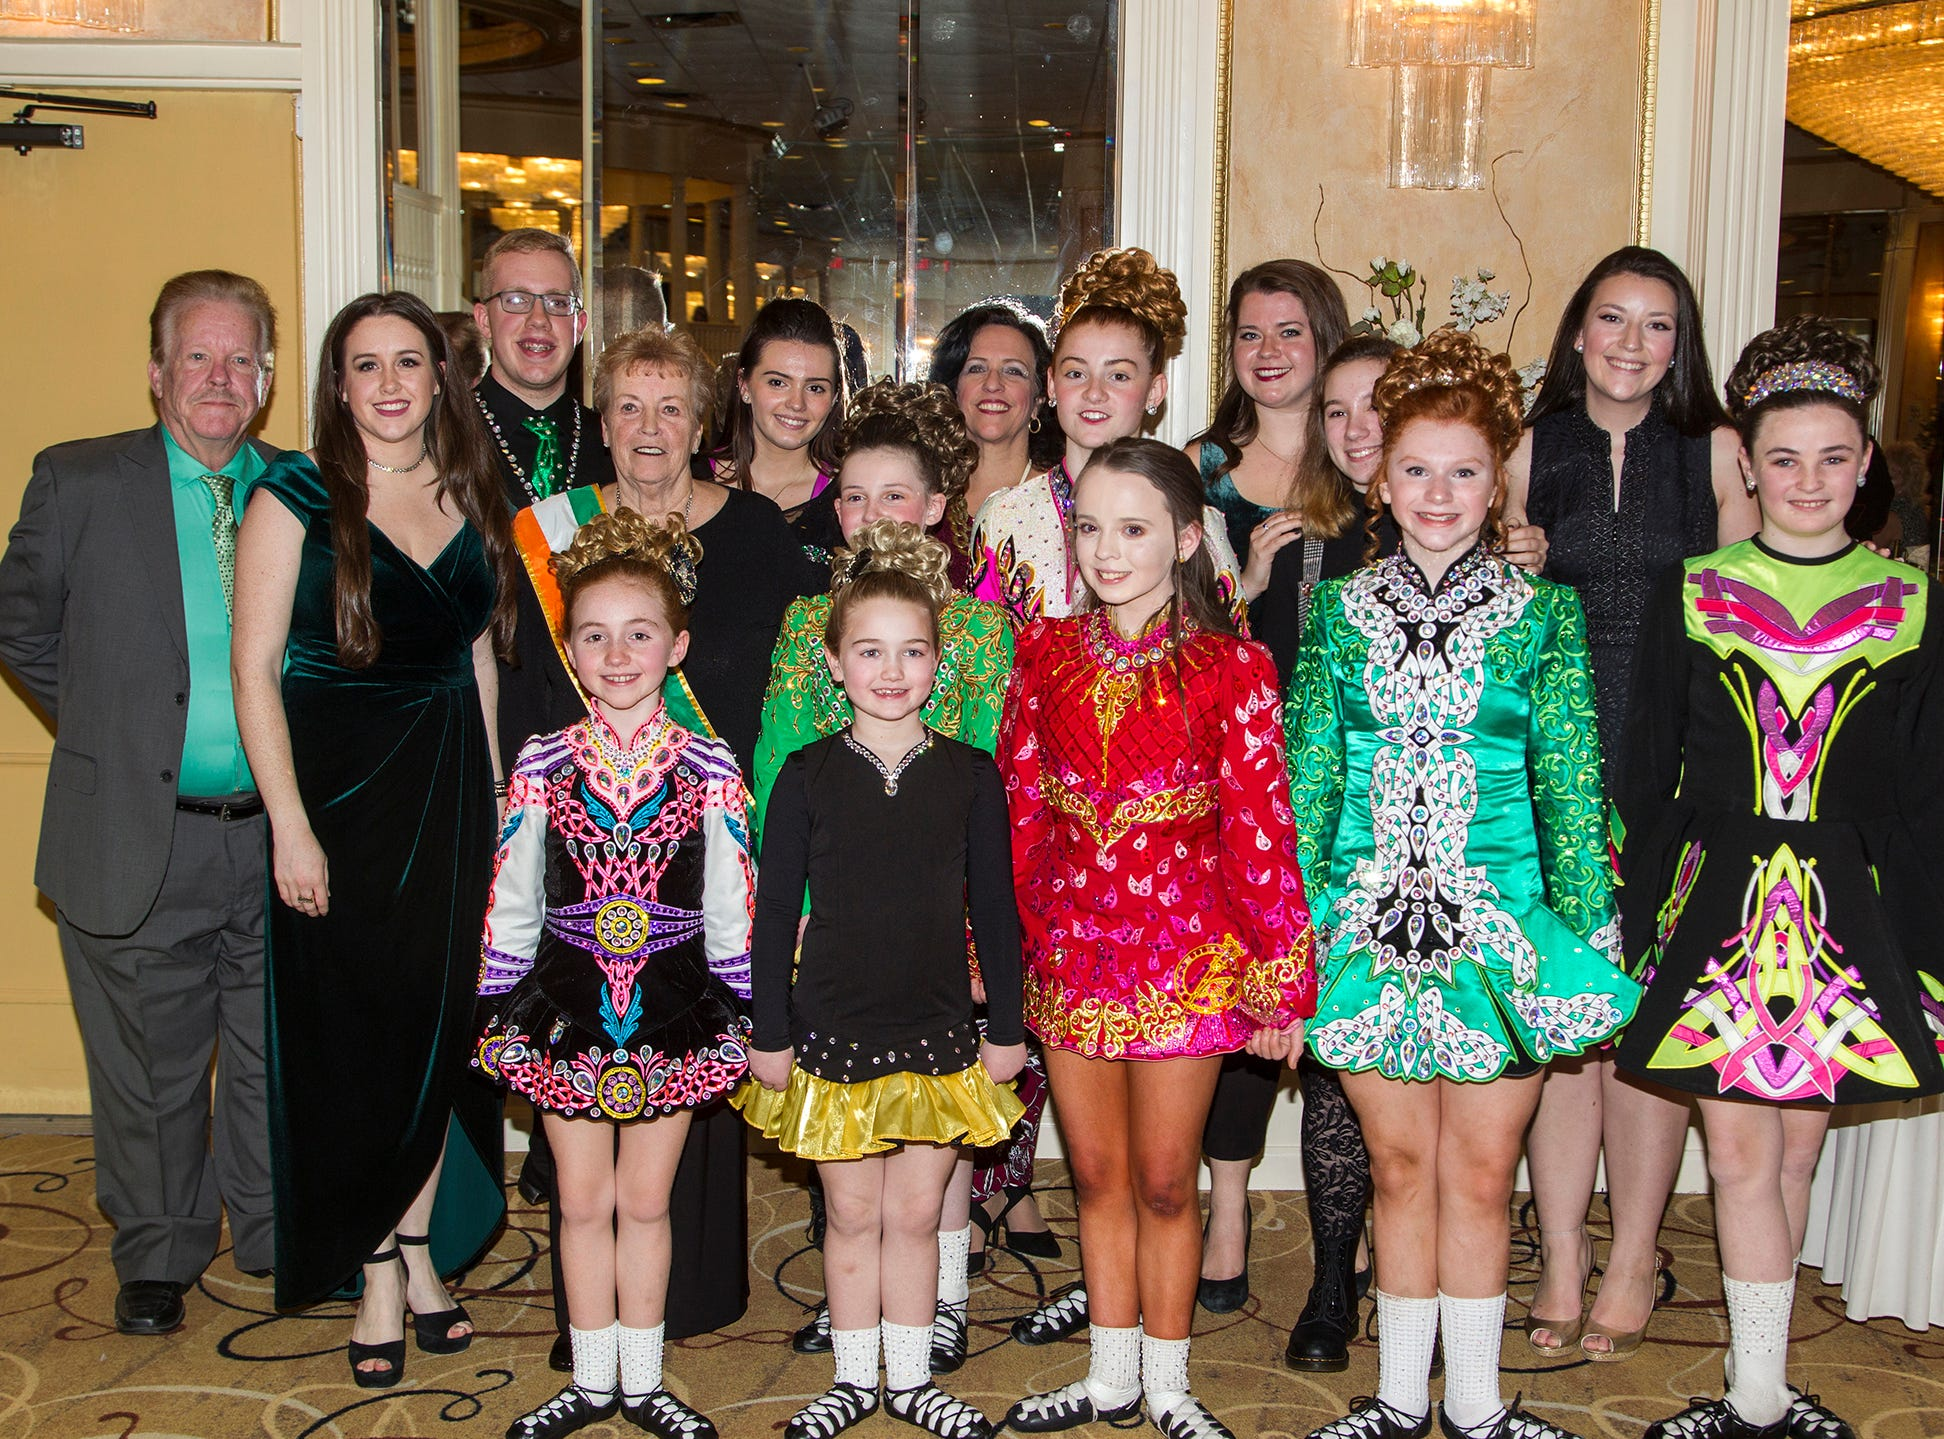 Early-McLoughlin School of Irish Dancing. 38th Annual St. Patrick's Day parade Installation Dance at The Graycliff in Moonachie. 2/23/2019